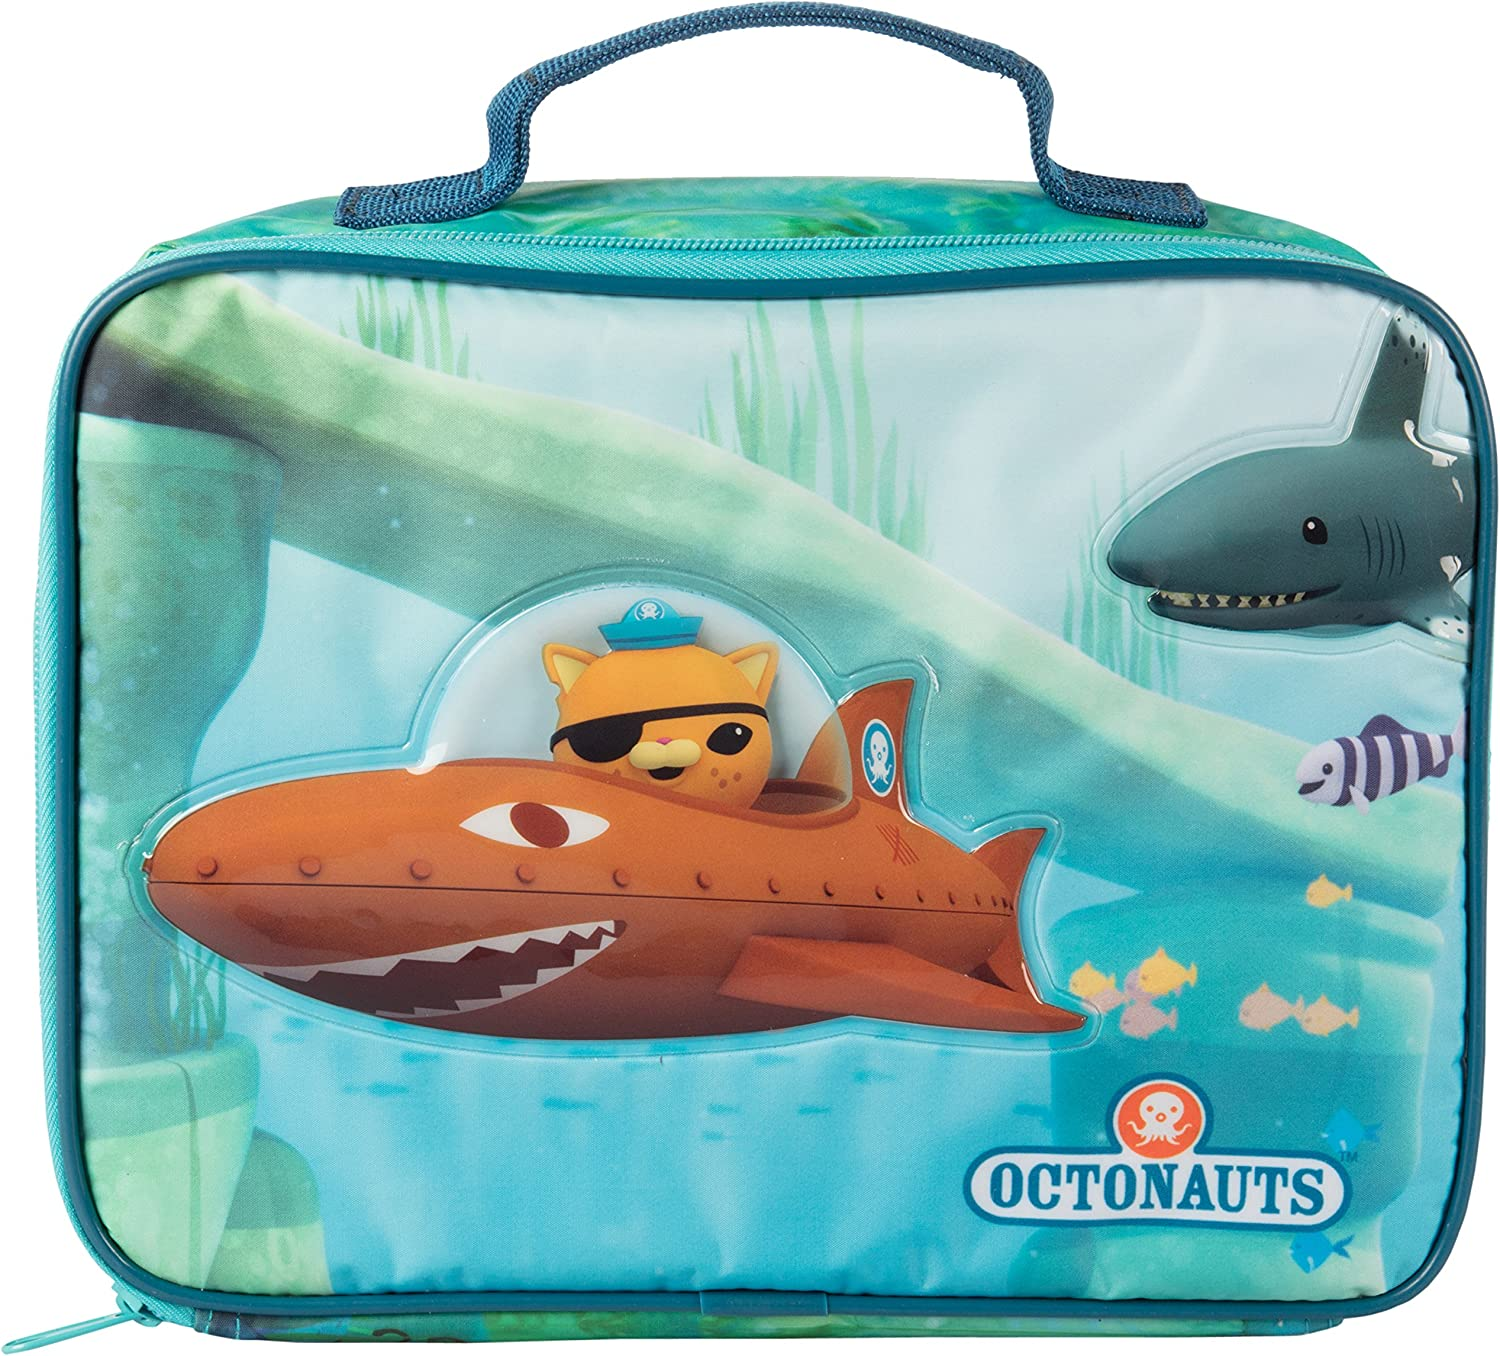 Octonauts Insulated Lunch Sleeve Reusable Heavy Duty Tote Bag W Mesh Pocket Submarine Kitchen Dining